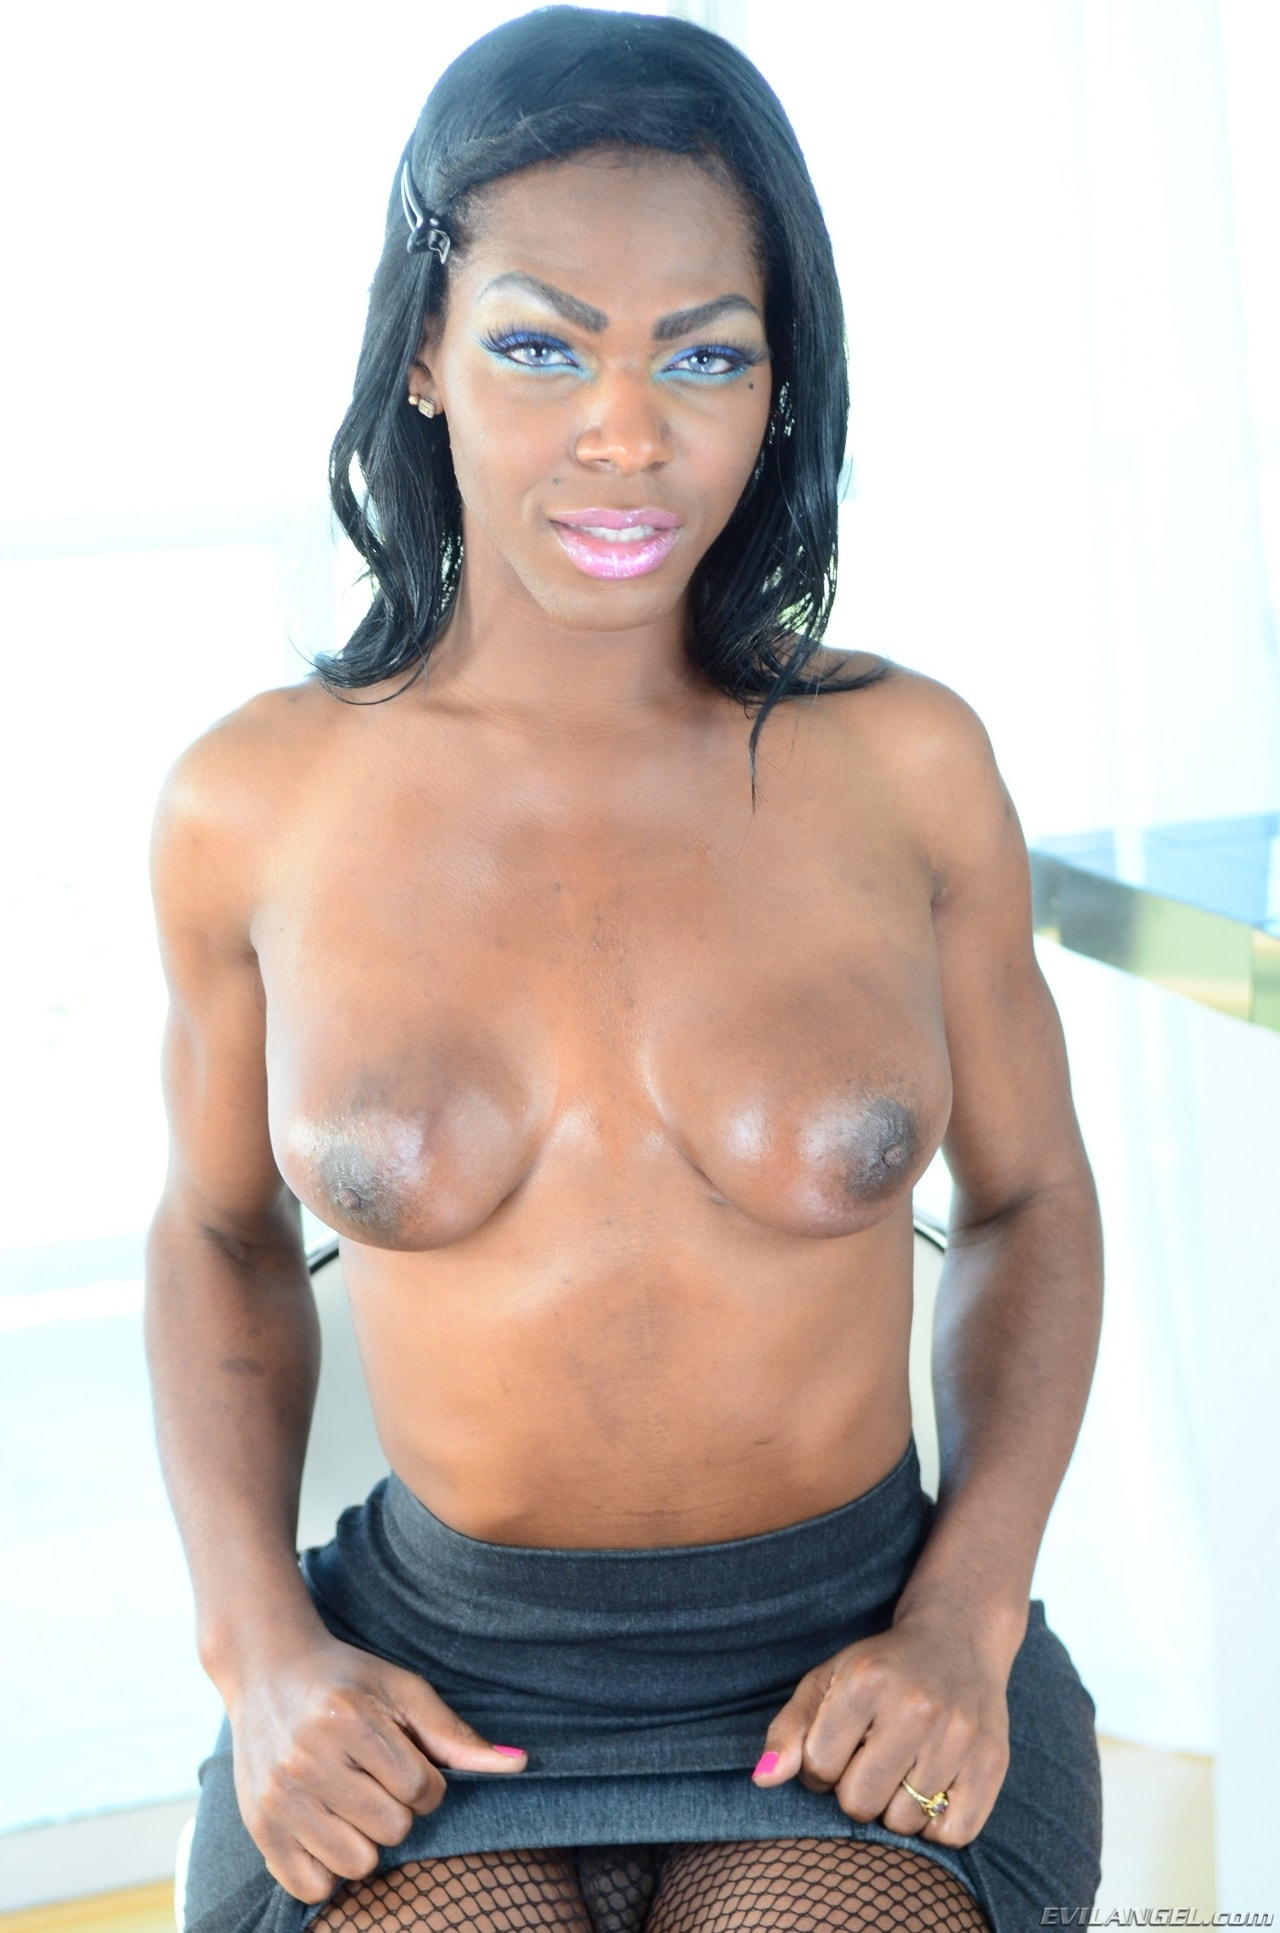 I Love Black Shemales 'Black Shemale Idol - The Auditions 03' starring Vixen Coxx (Photo 28)